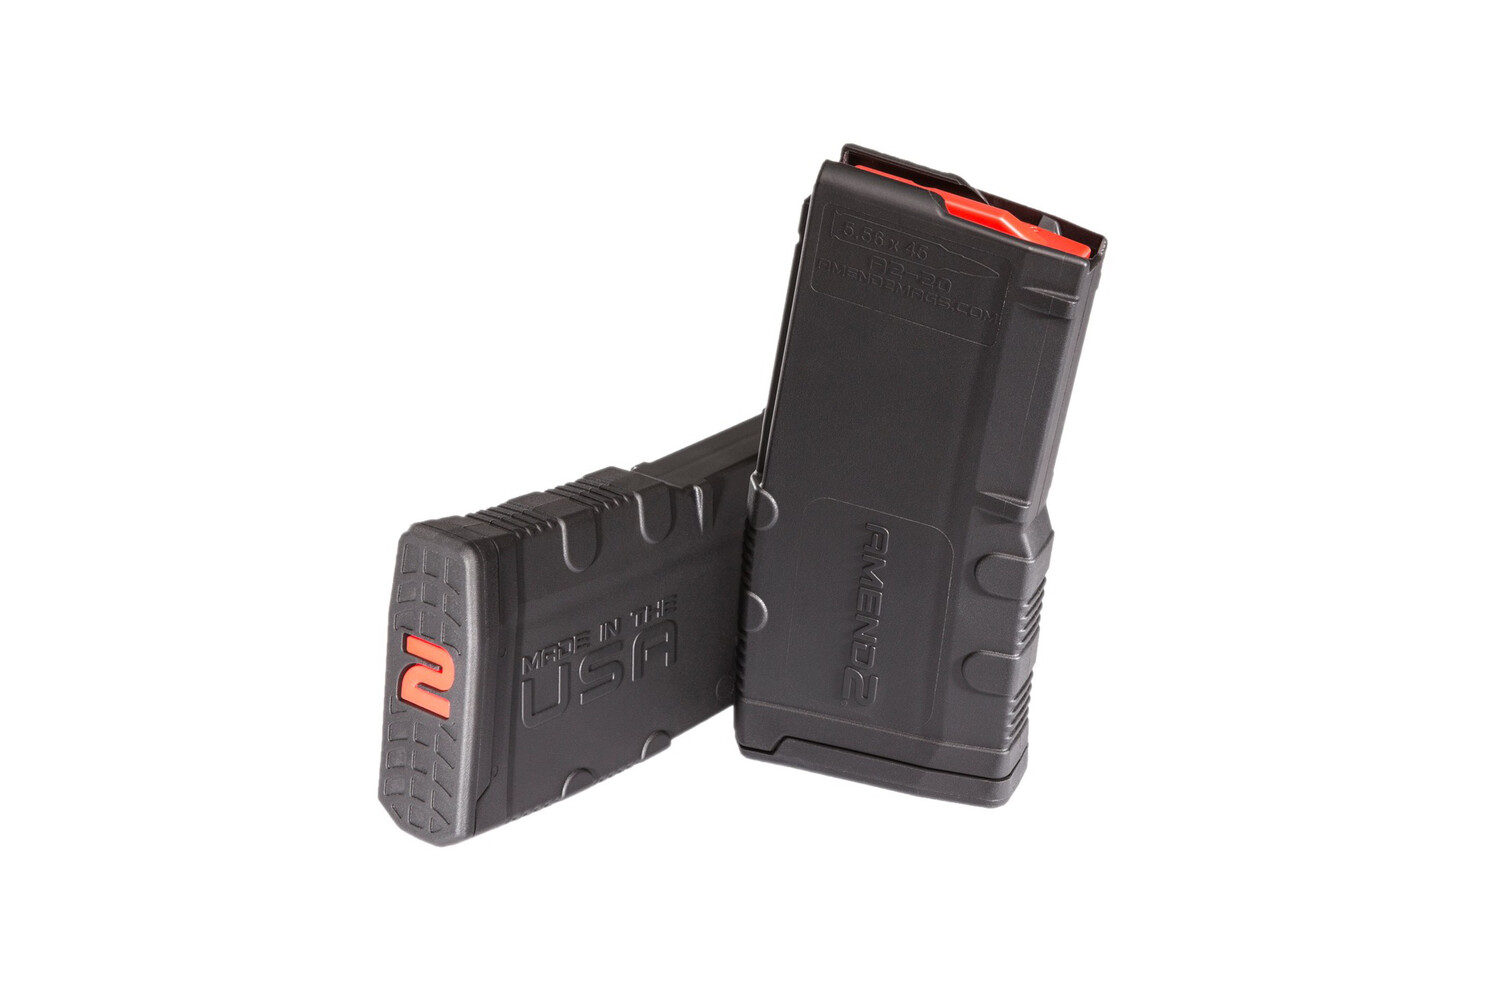 20 Round Magazine Mod-2 Model - AMEND2® AR-15